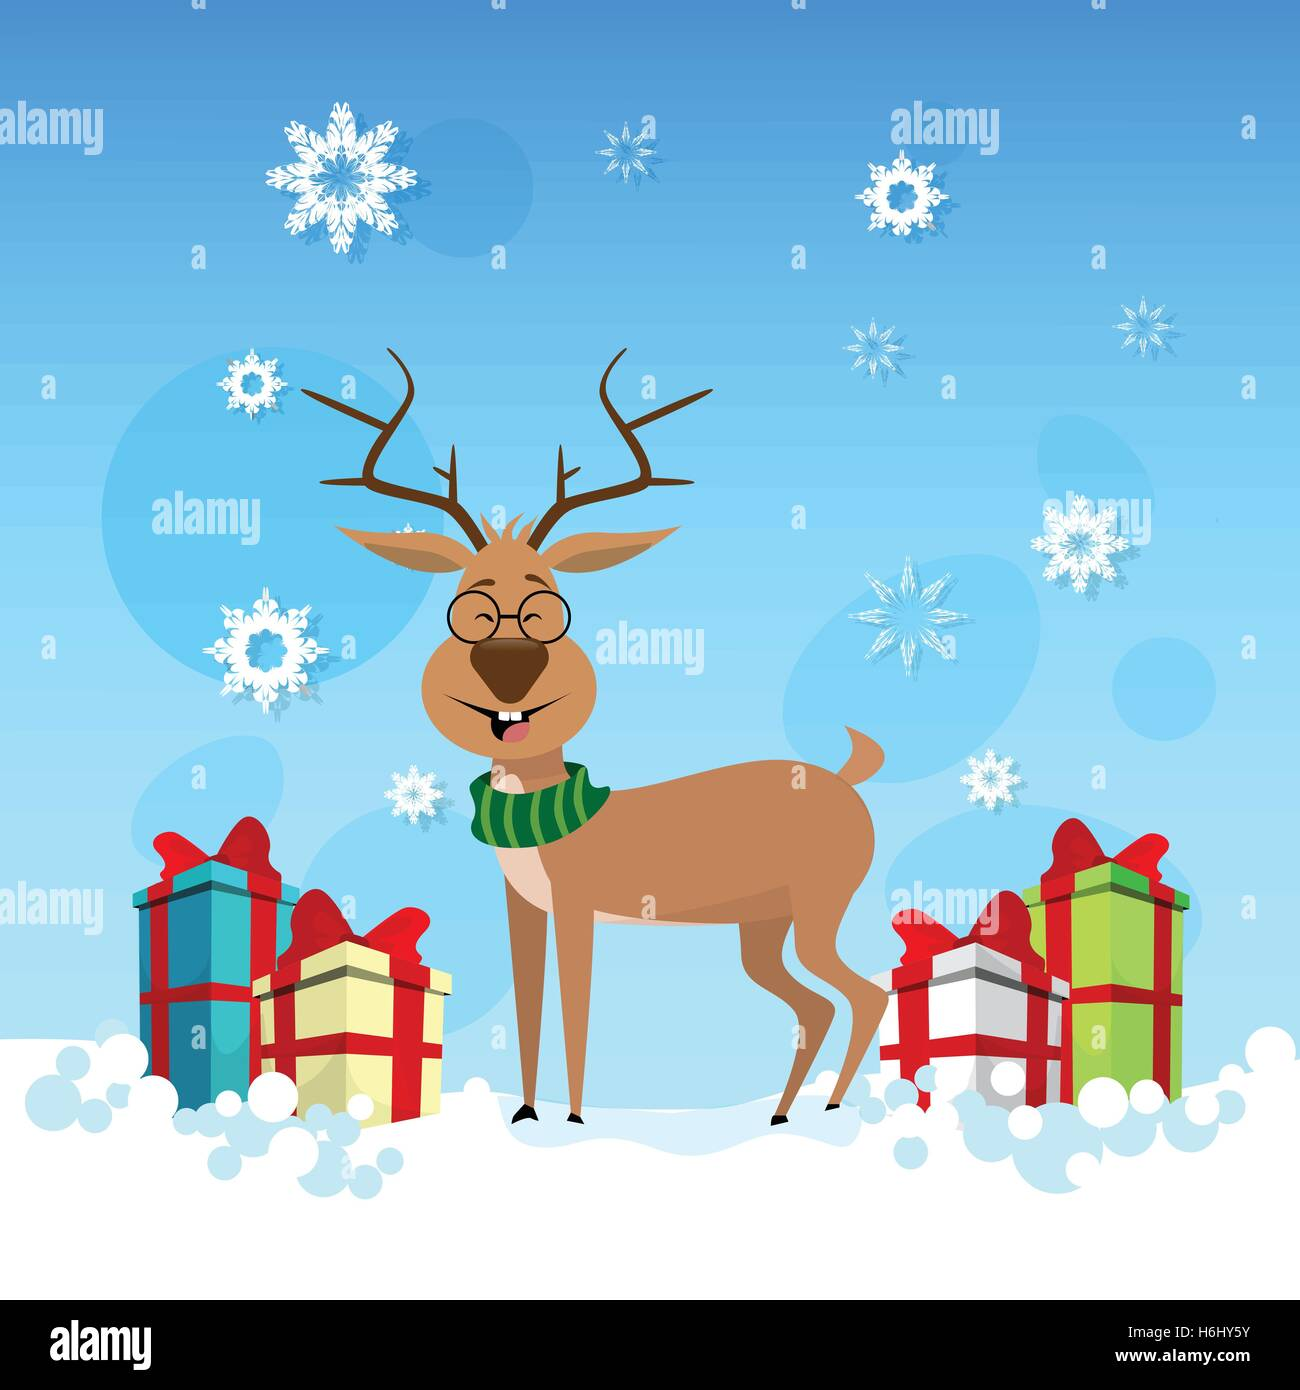 Smiling Christmas Reindeer With Holiday Present Boxes Happy New Year Celebration Banner Flat Vector Illustration - Stock Image